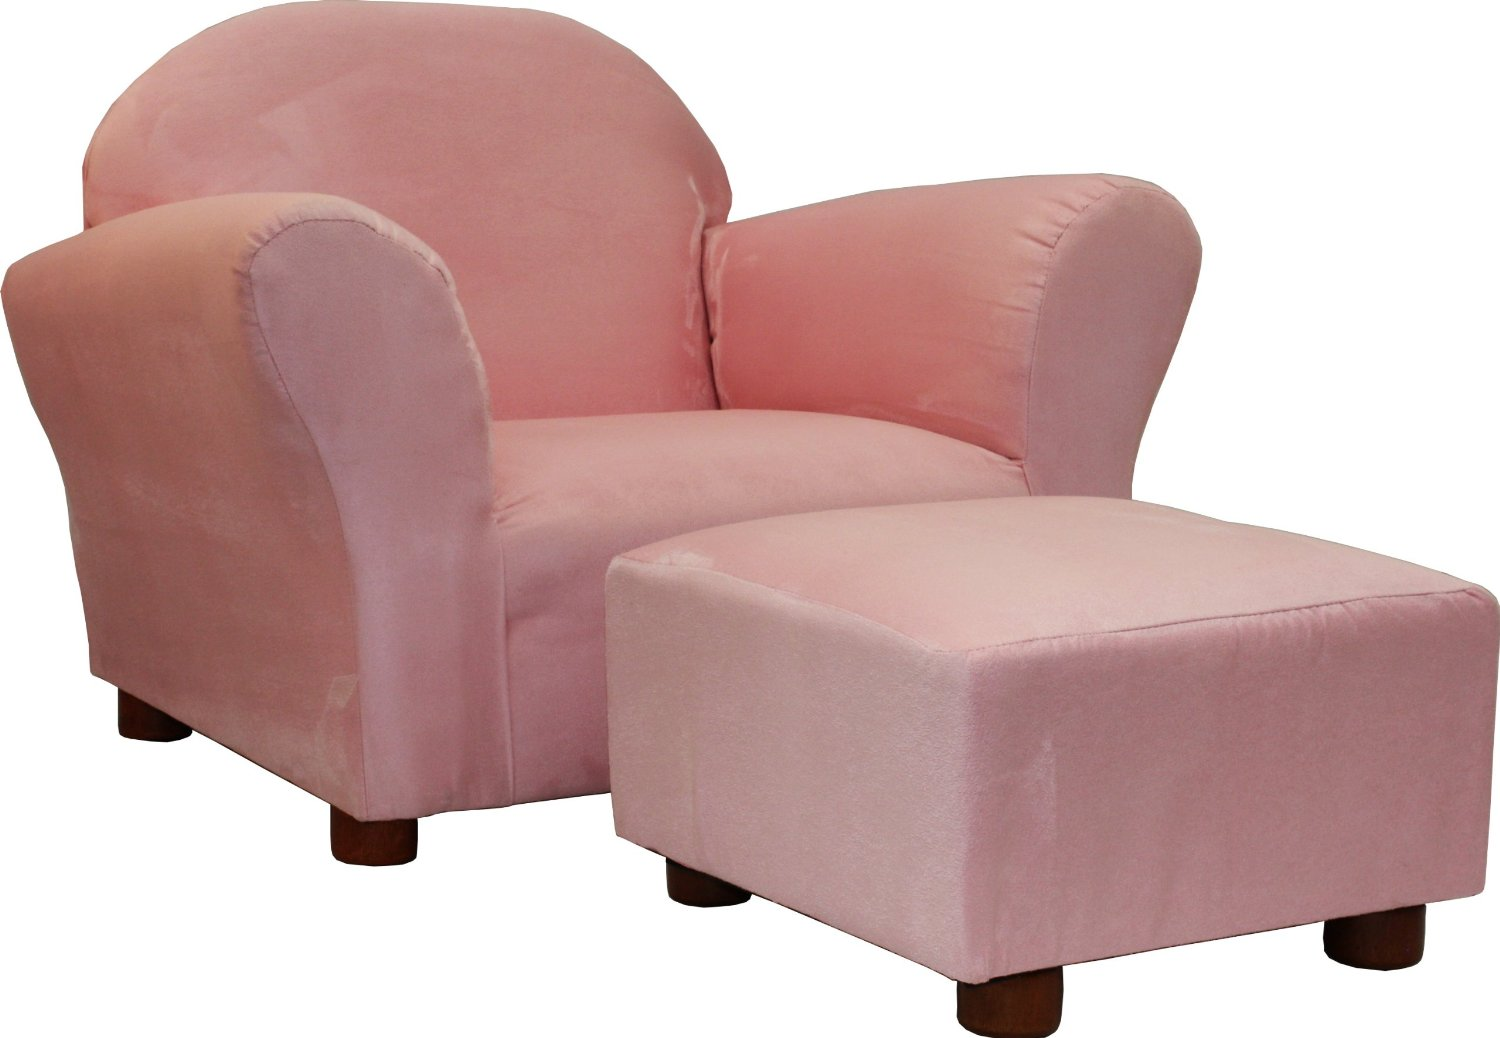 pink chairs for bedrooms amp toddler chair and ottoman sets 16729